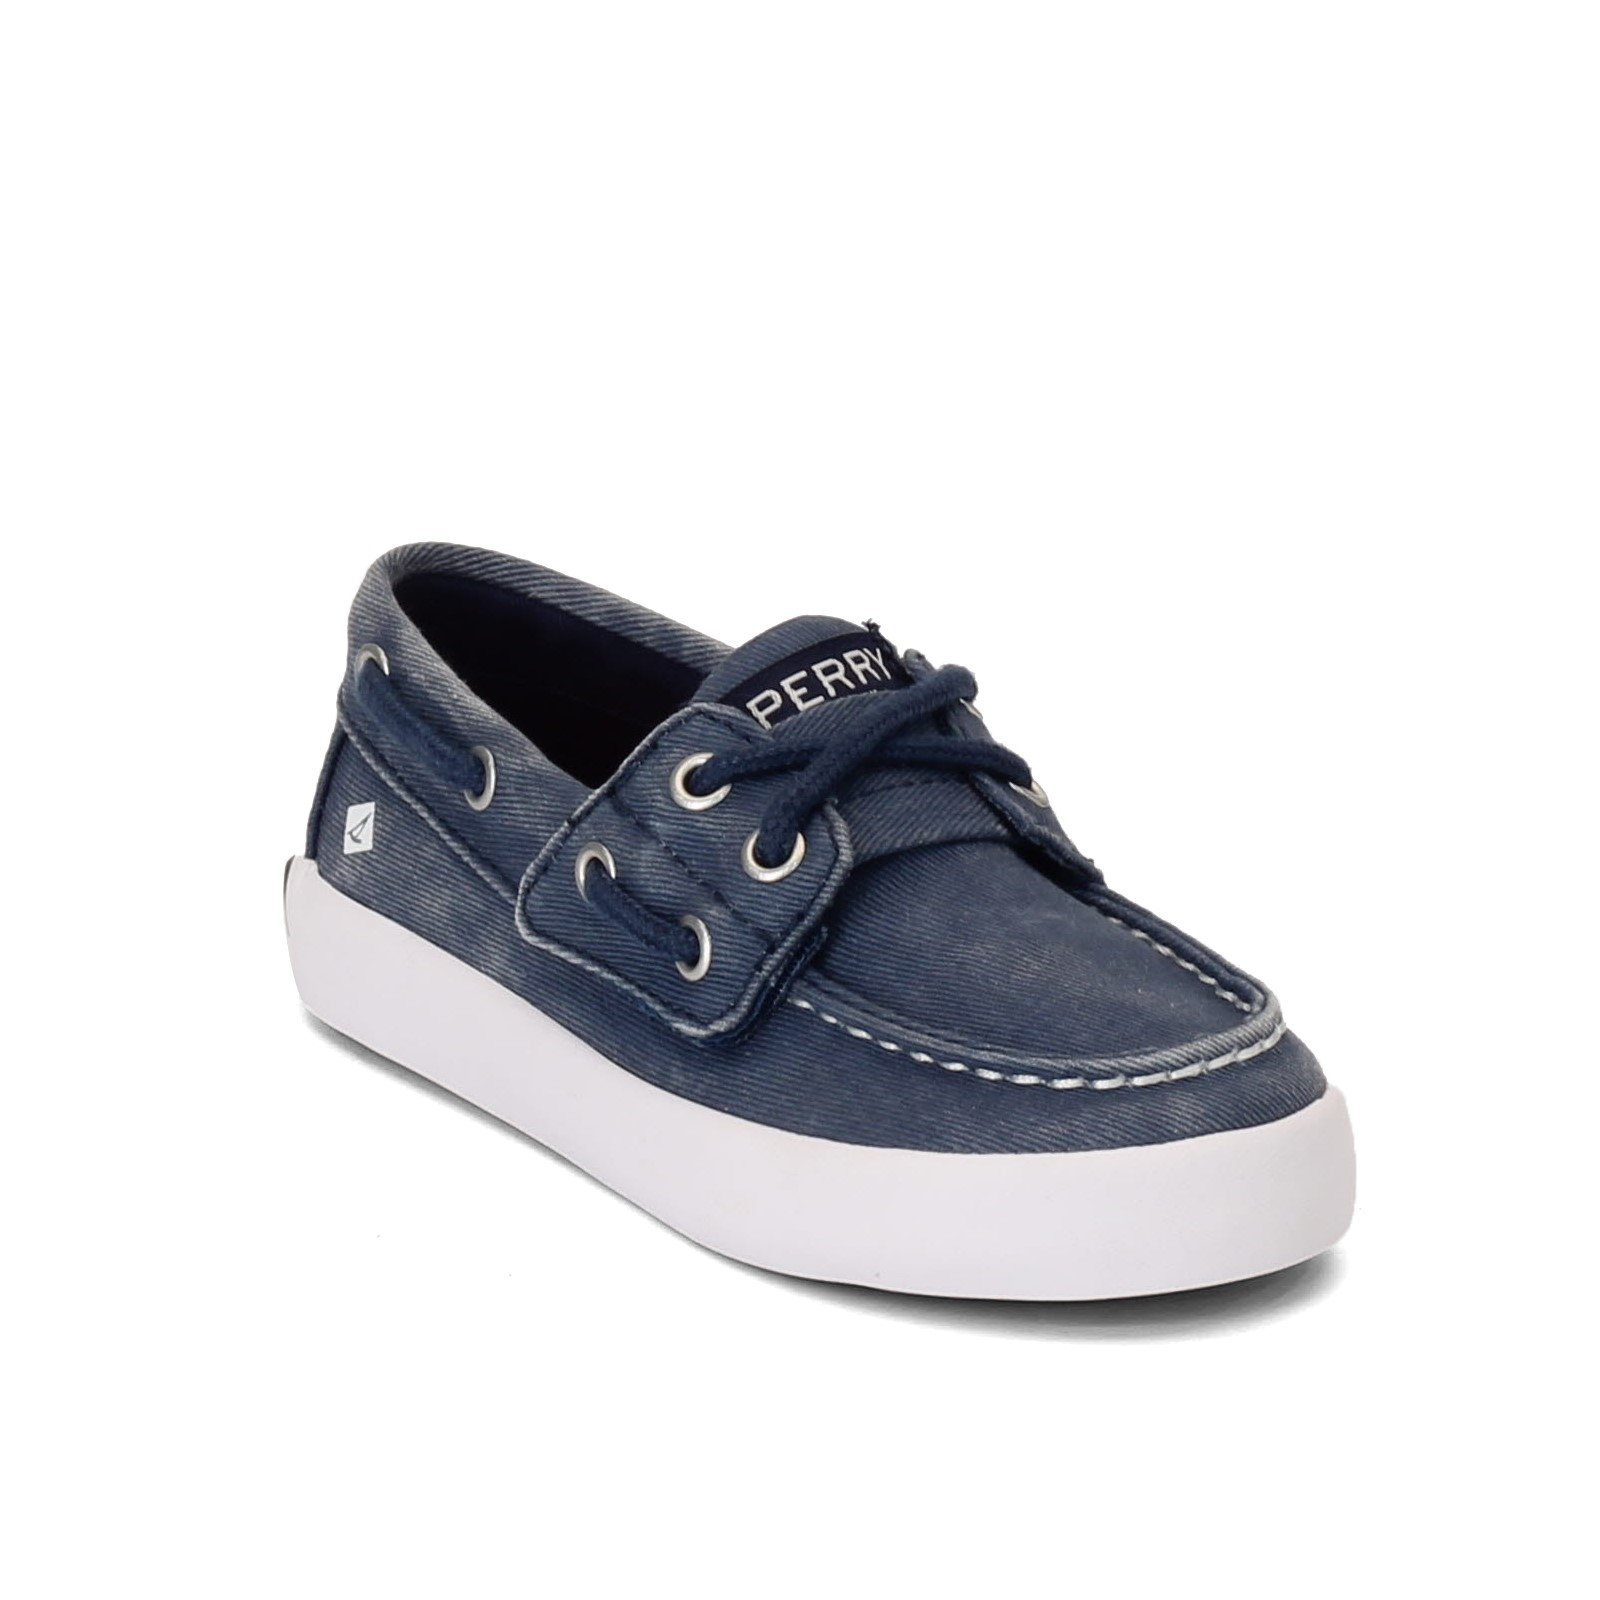 Kid's Sperry, Tuck JR Boat Shoe - Toddler & Little Kid